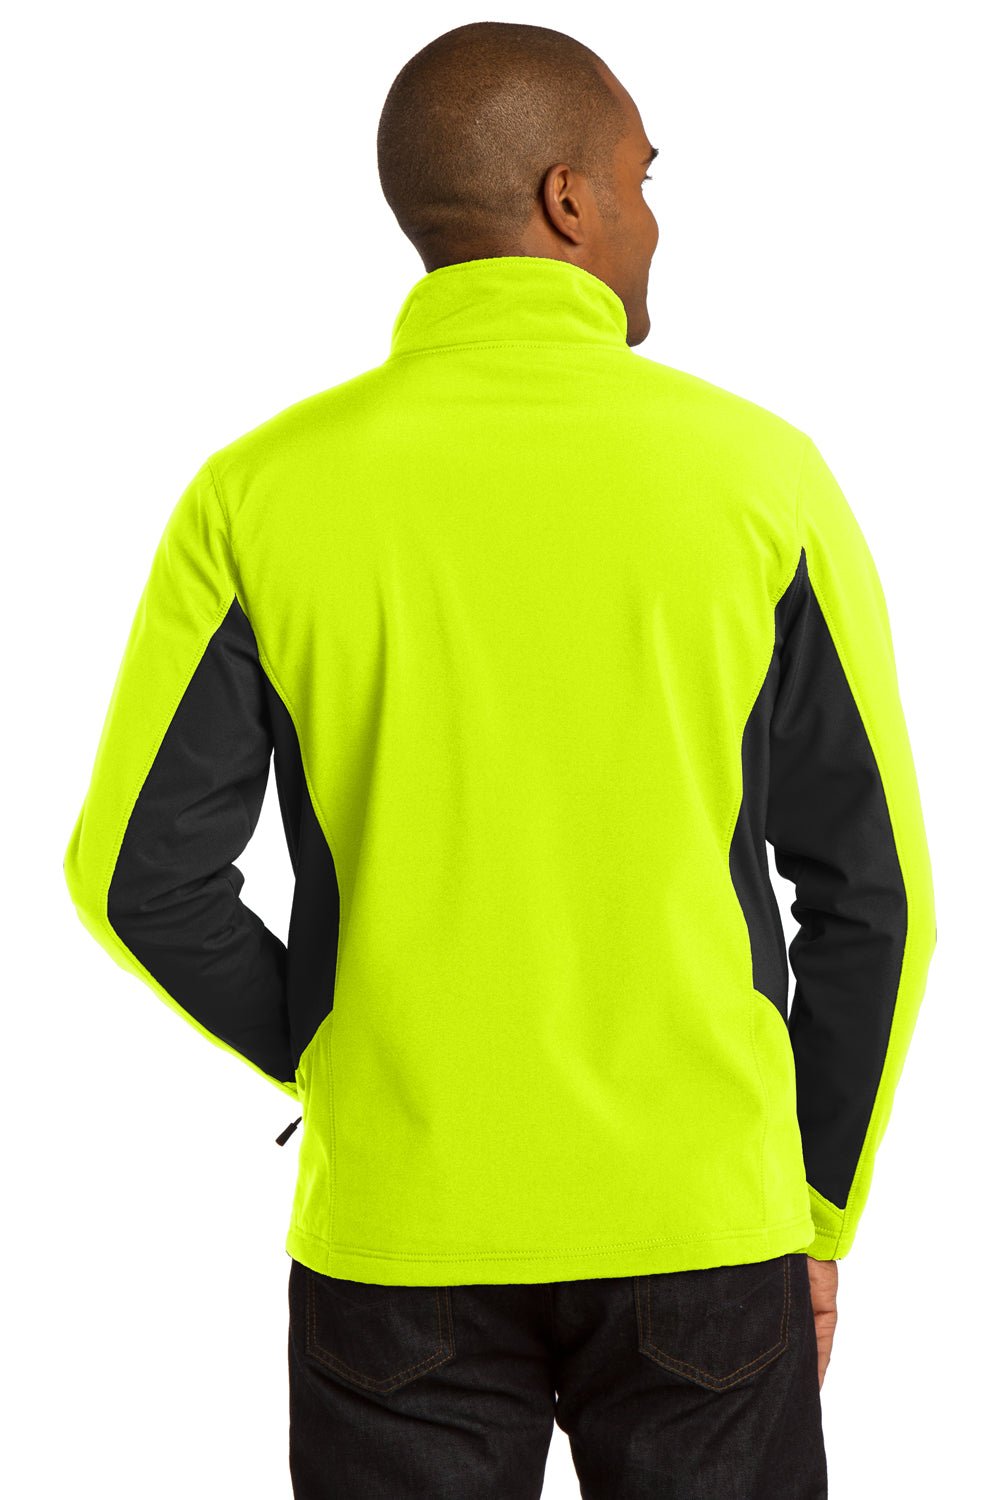 Port Authority J318 Mens Core Wind & Water Resistant Full Zip Jacket Safety Yellow/Black Back